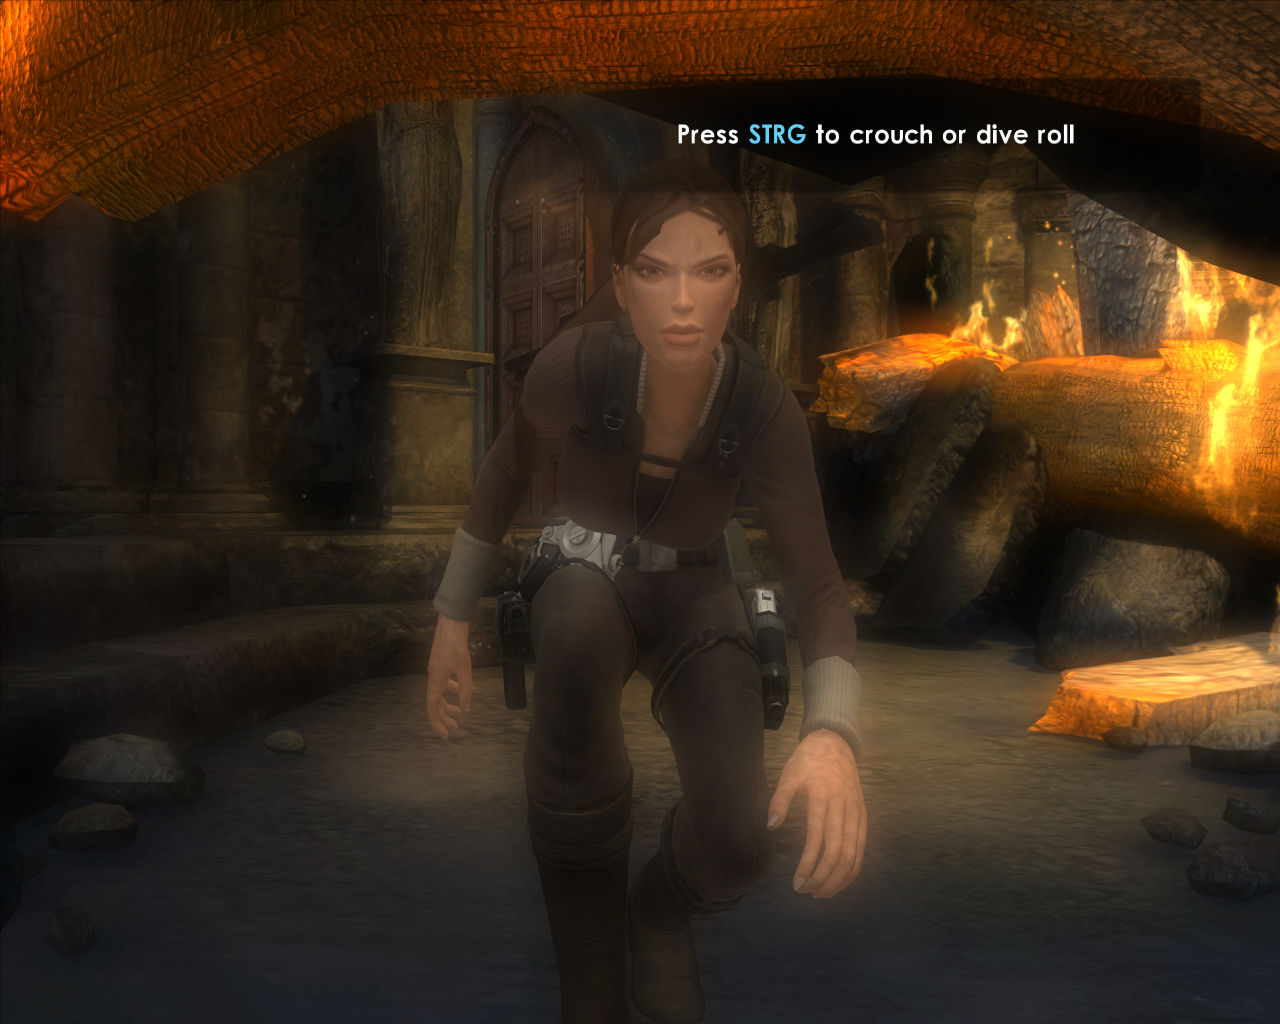 [21/11/08] Tomb Raider: Underworld - Screenshots of the retail version (picture: PCGH)